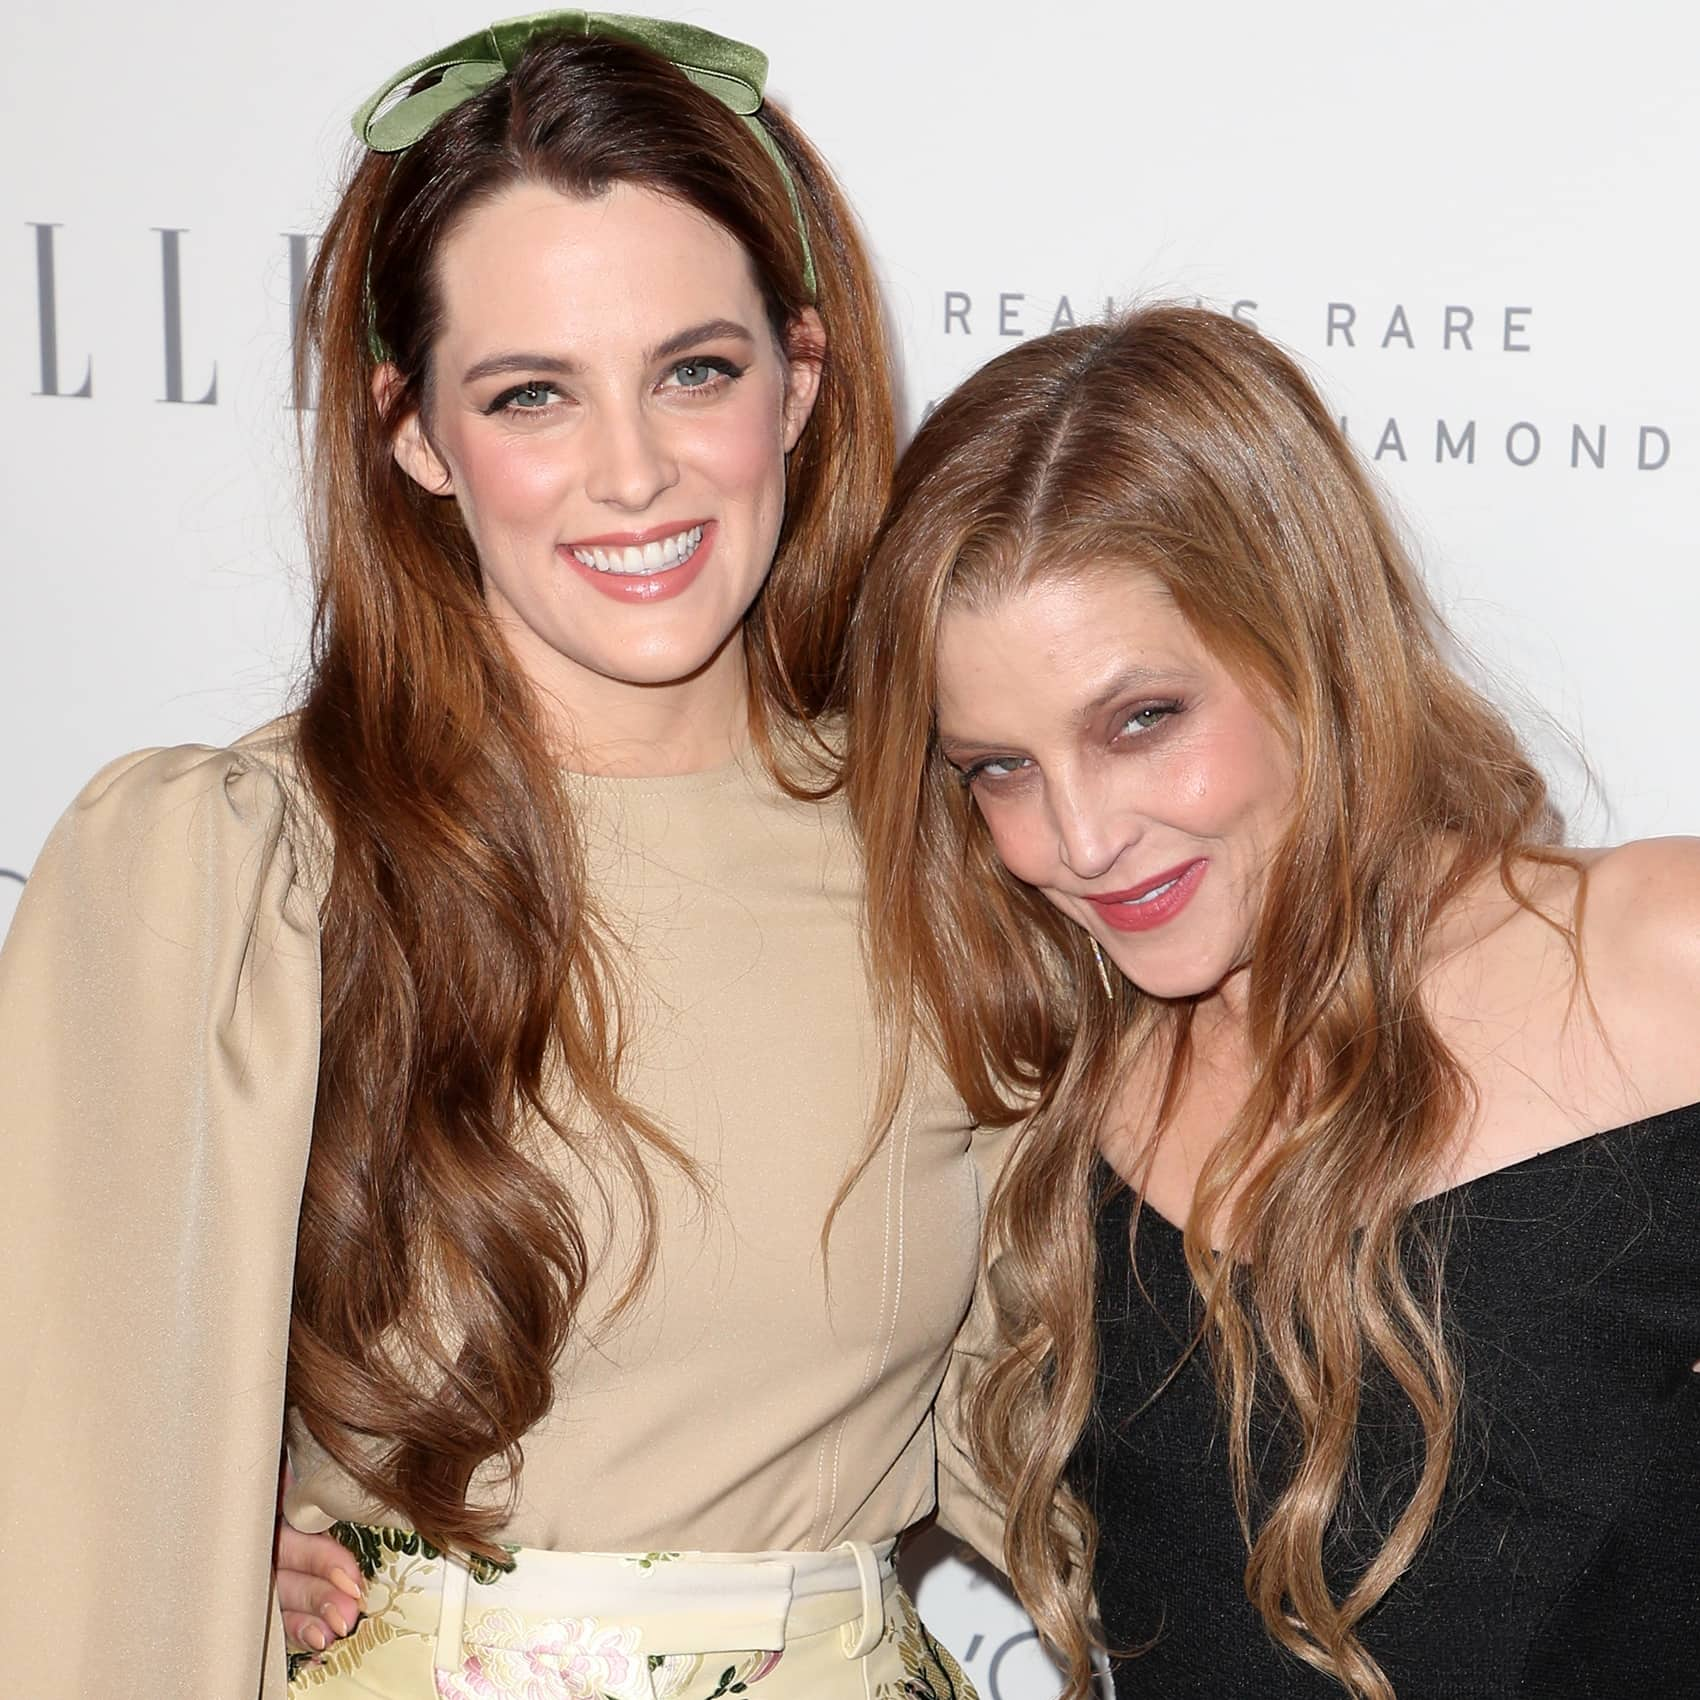 Danielle Riley Keough is the daughter of musicians Lisa Marie Presley and Danny Keough